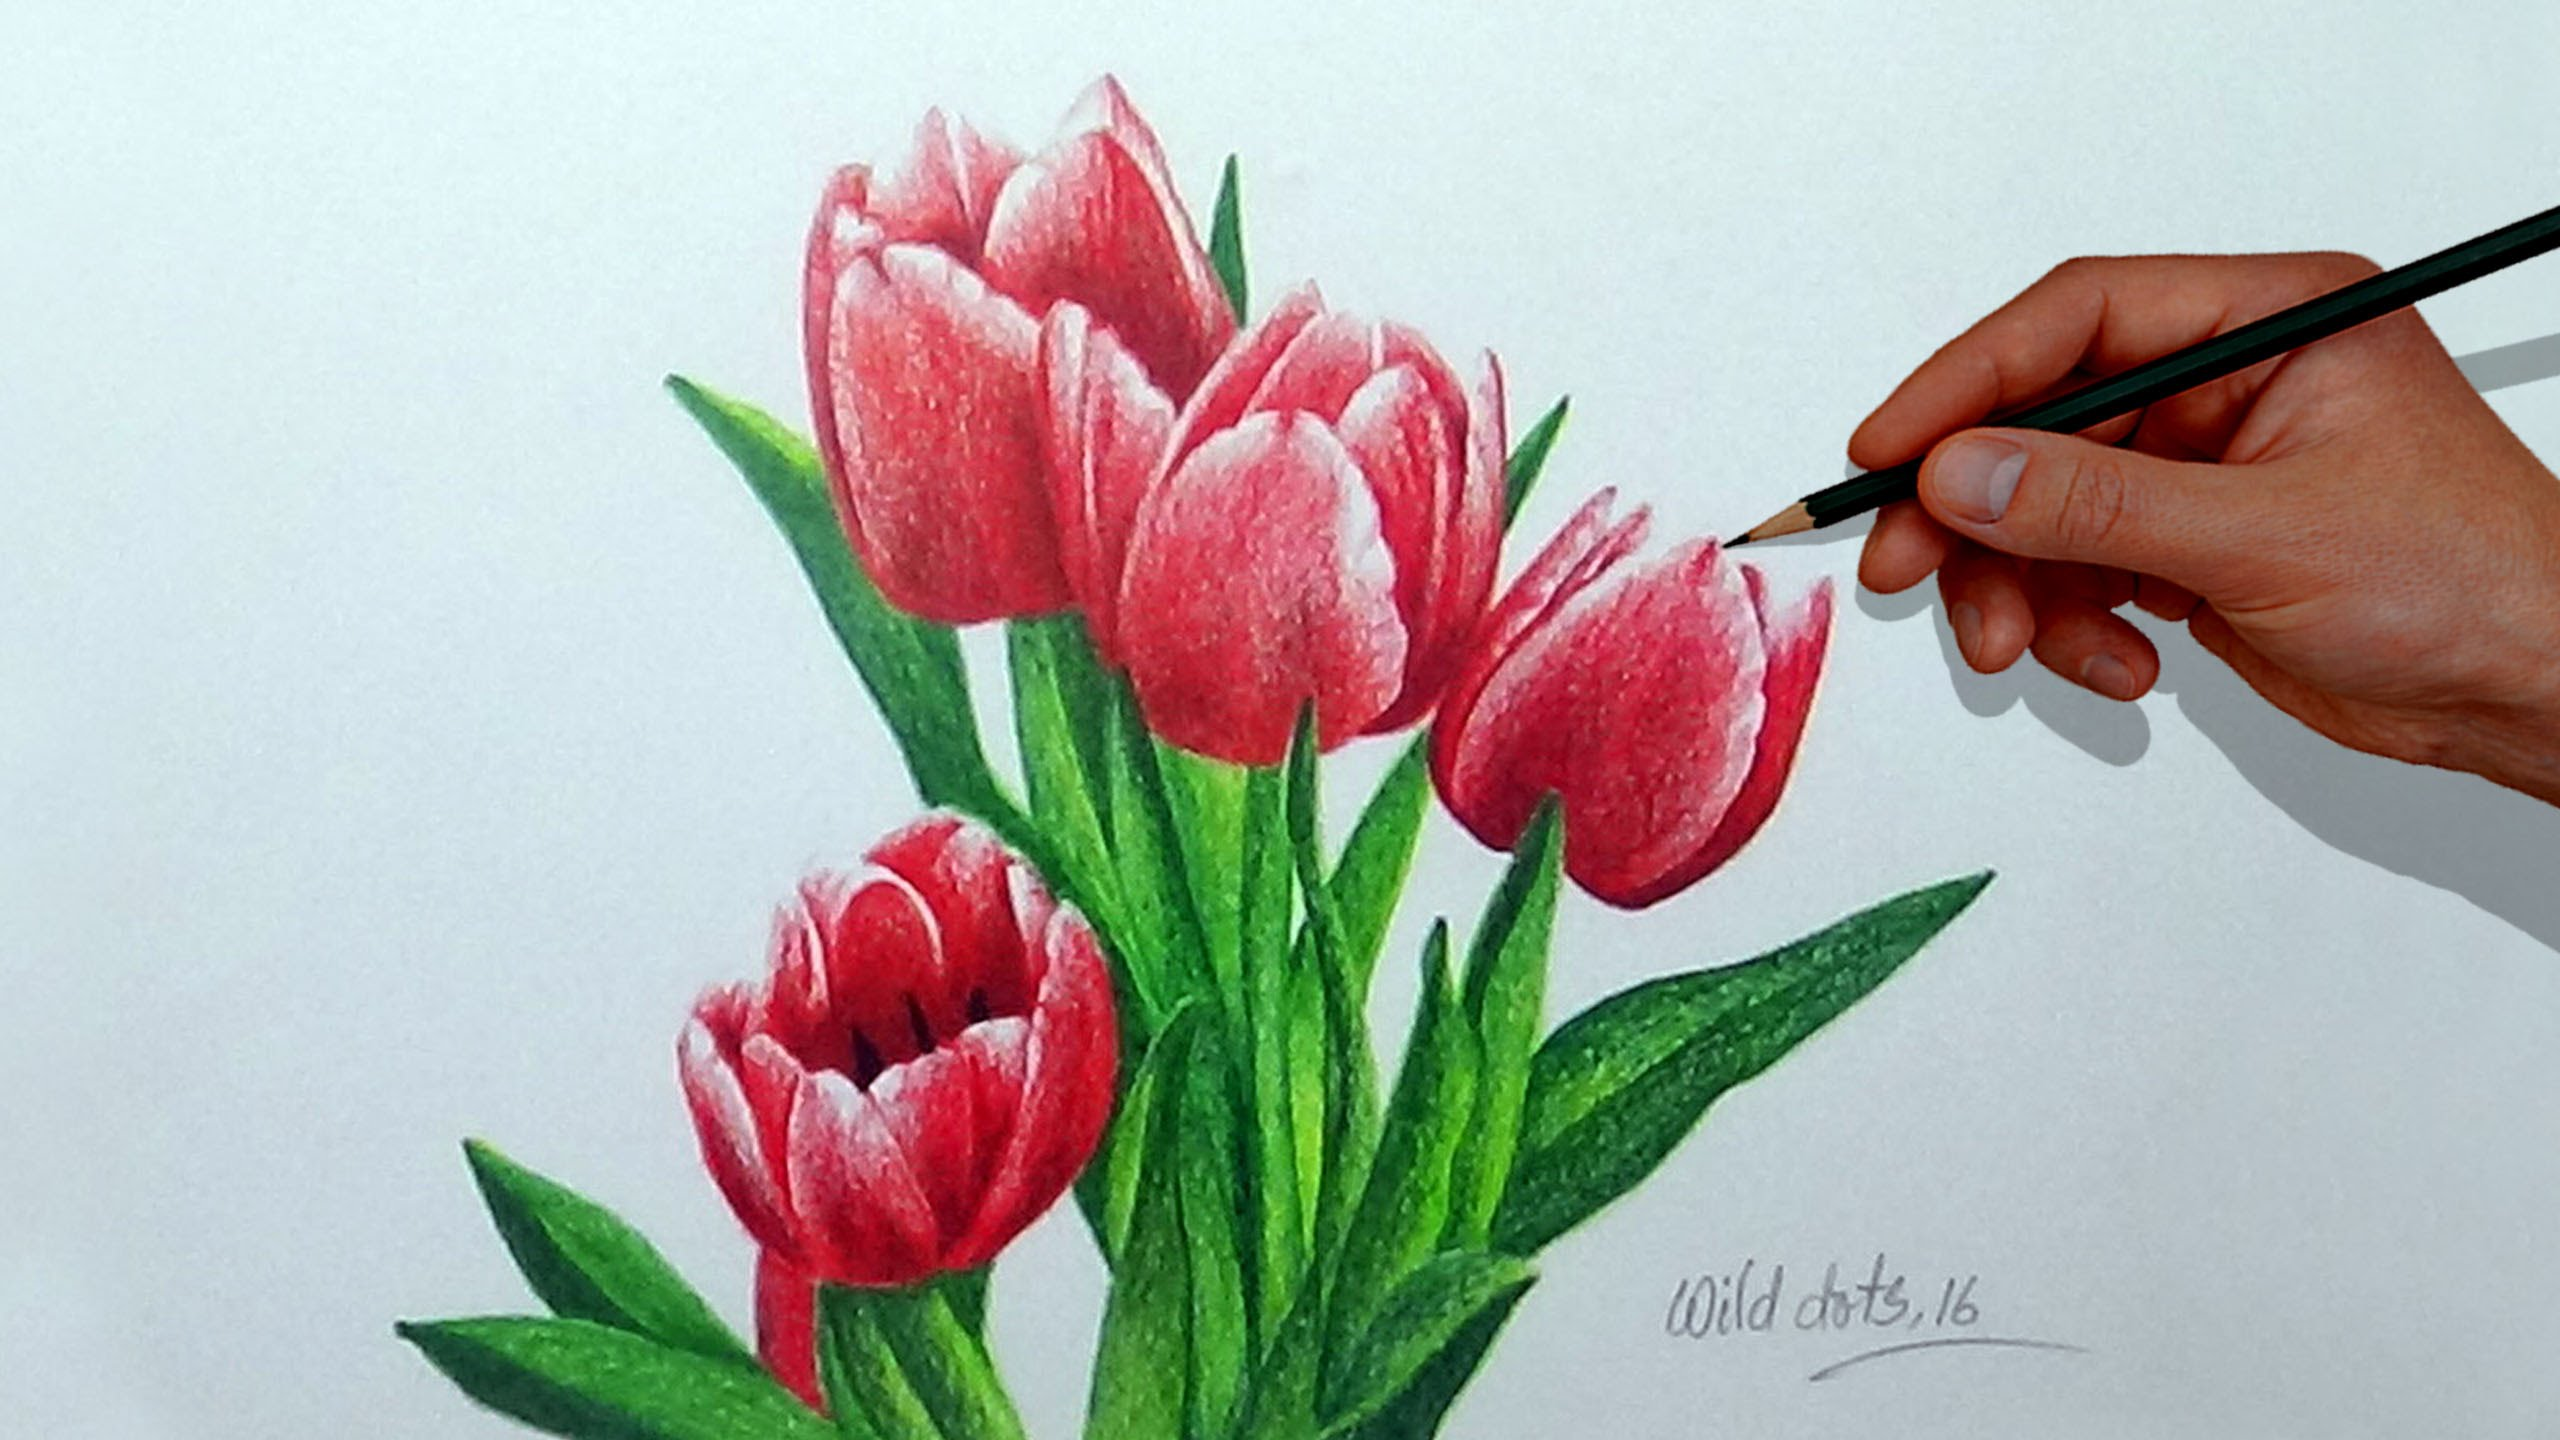 Drawn rose pencil crayon How A With A Tulip